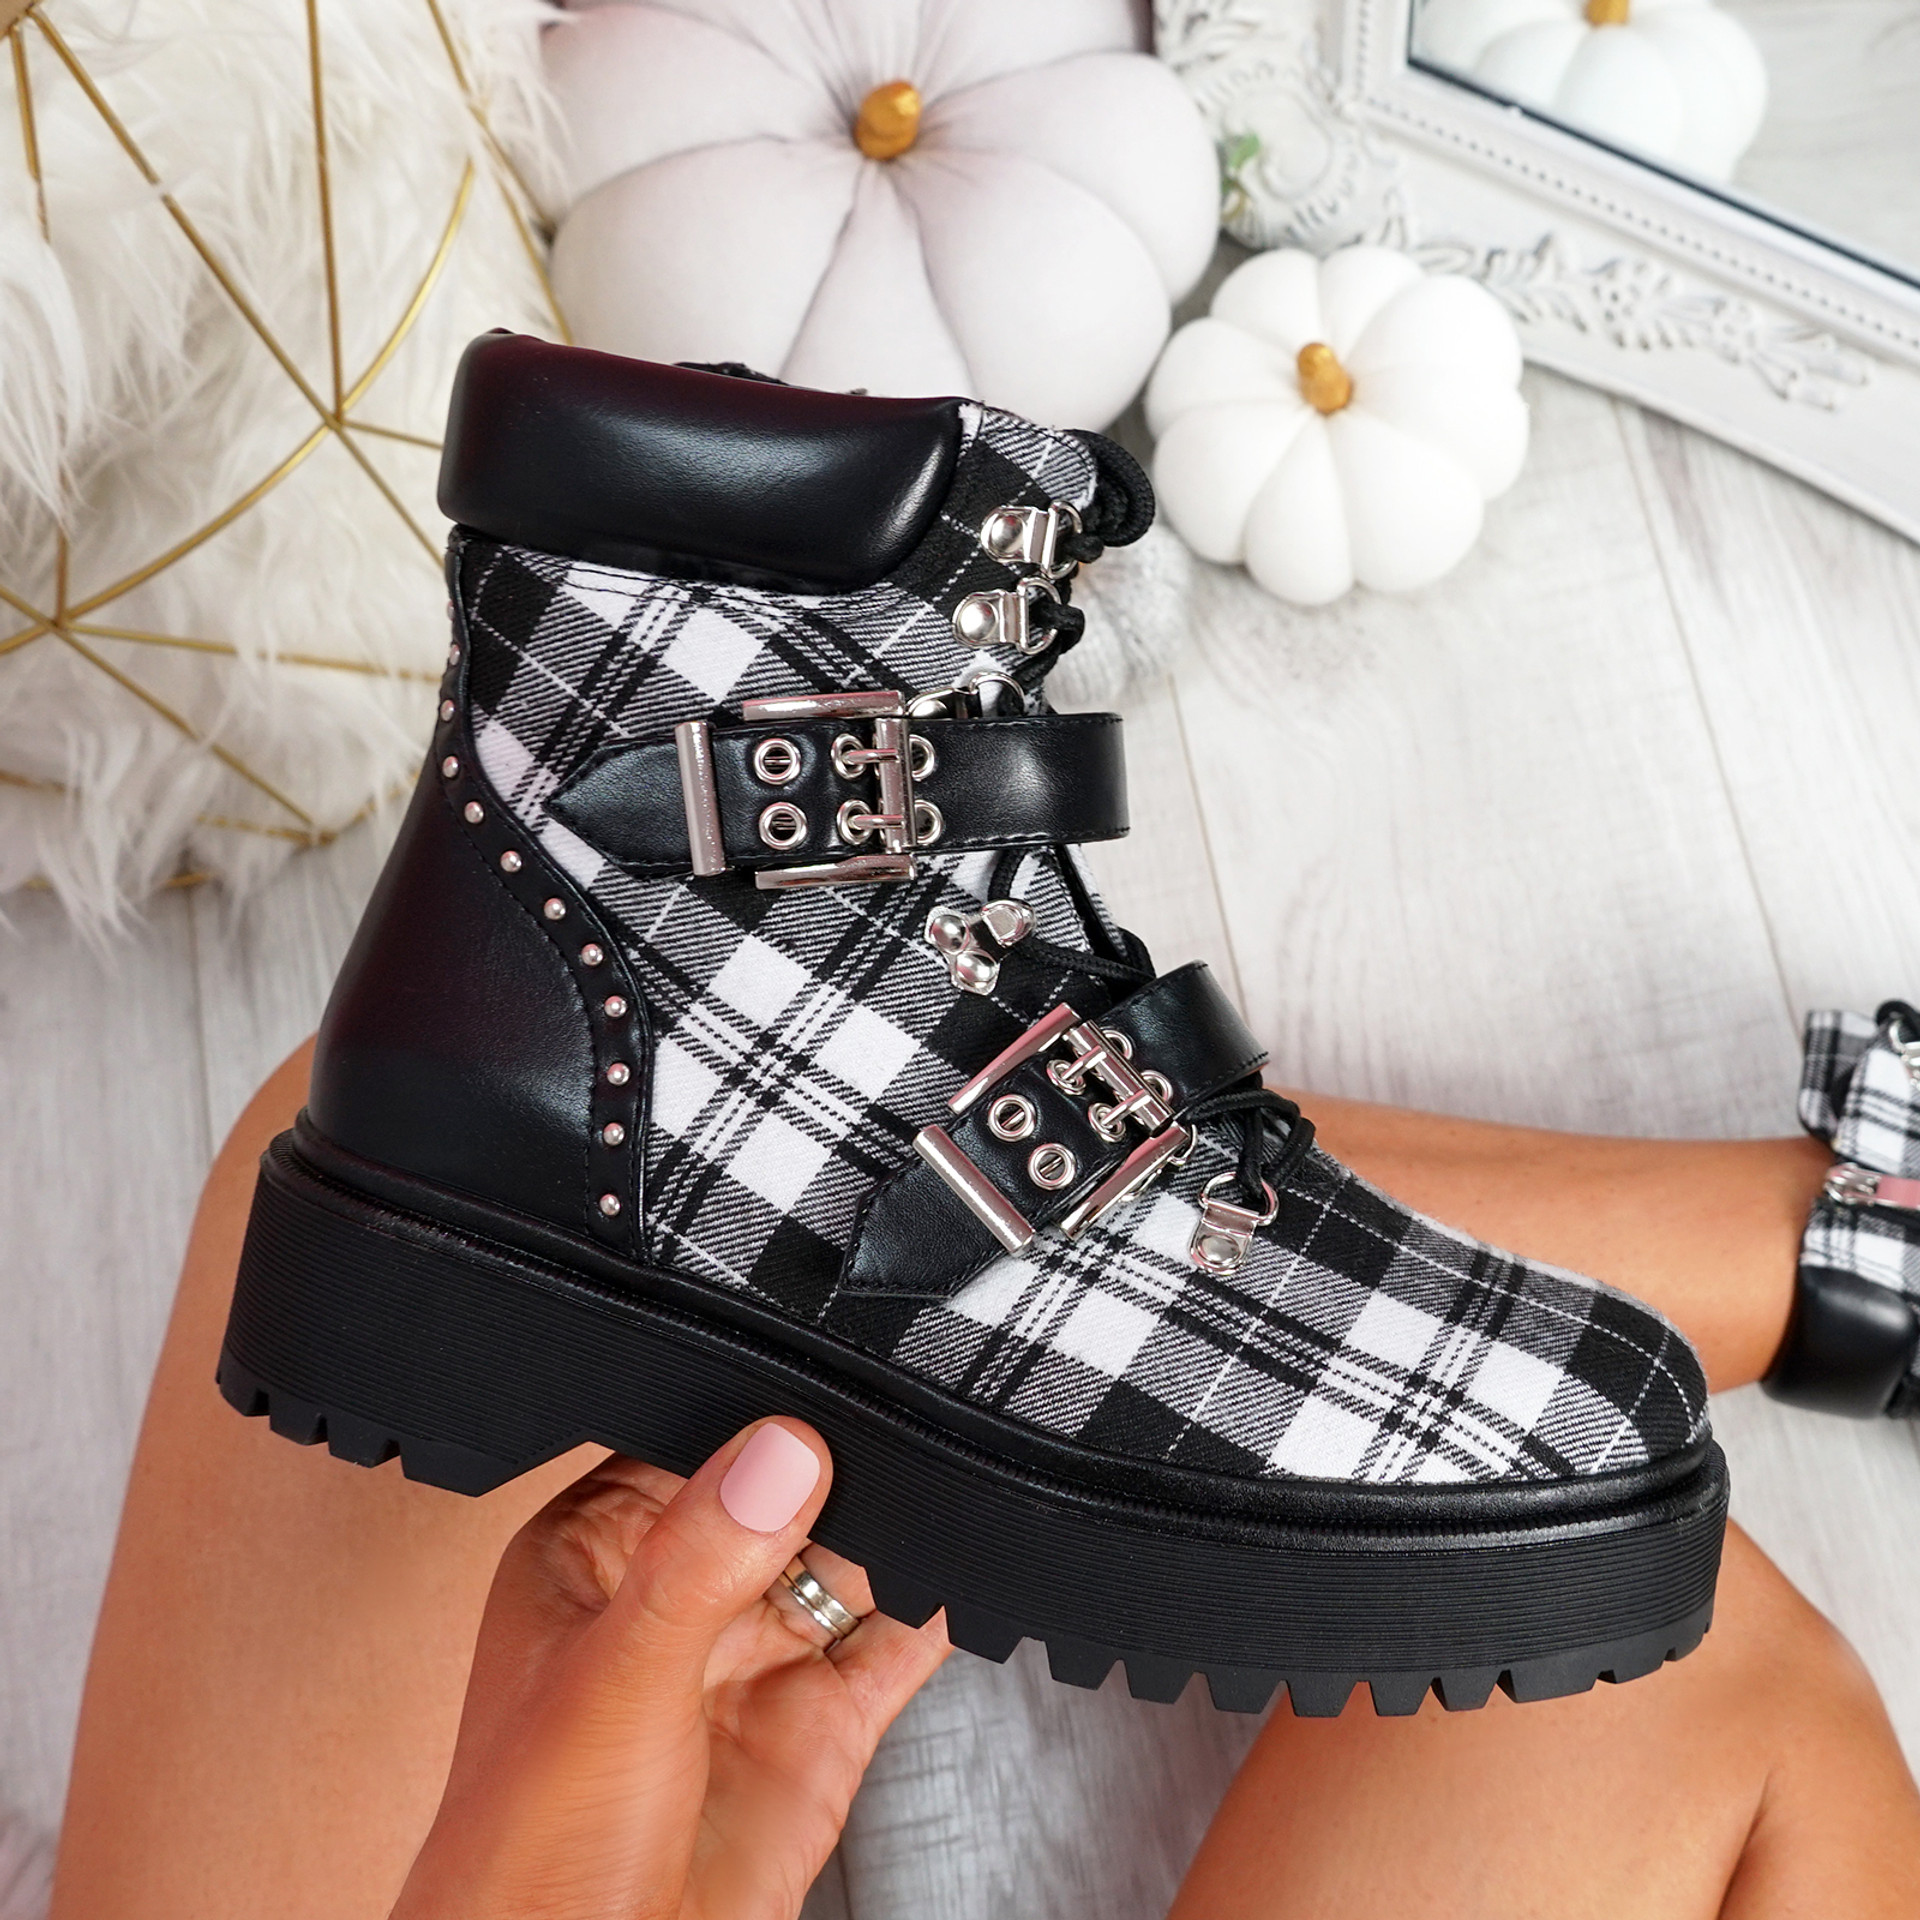 Gevvo Black White Buckle Ankle Boots